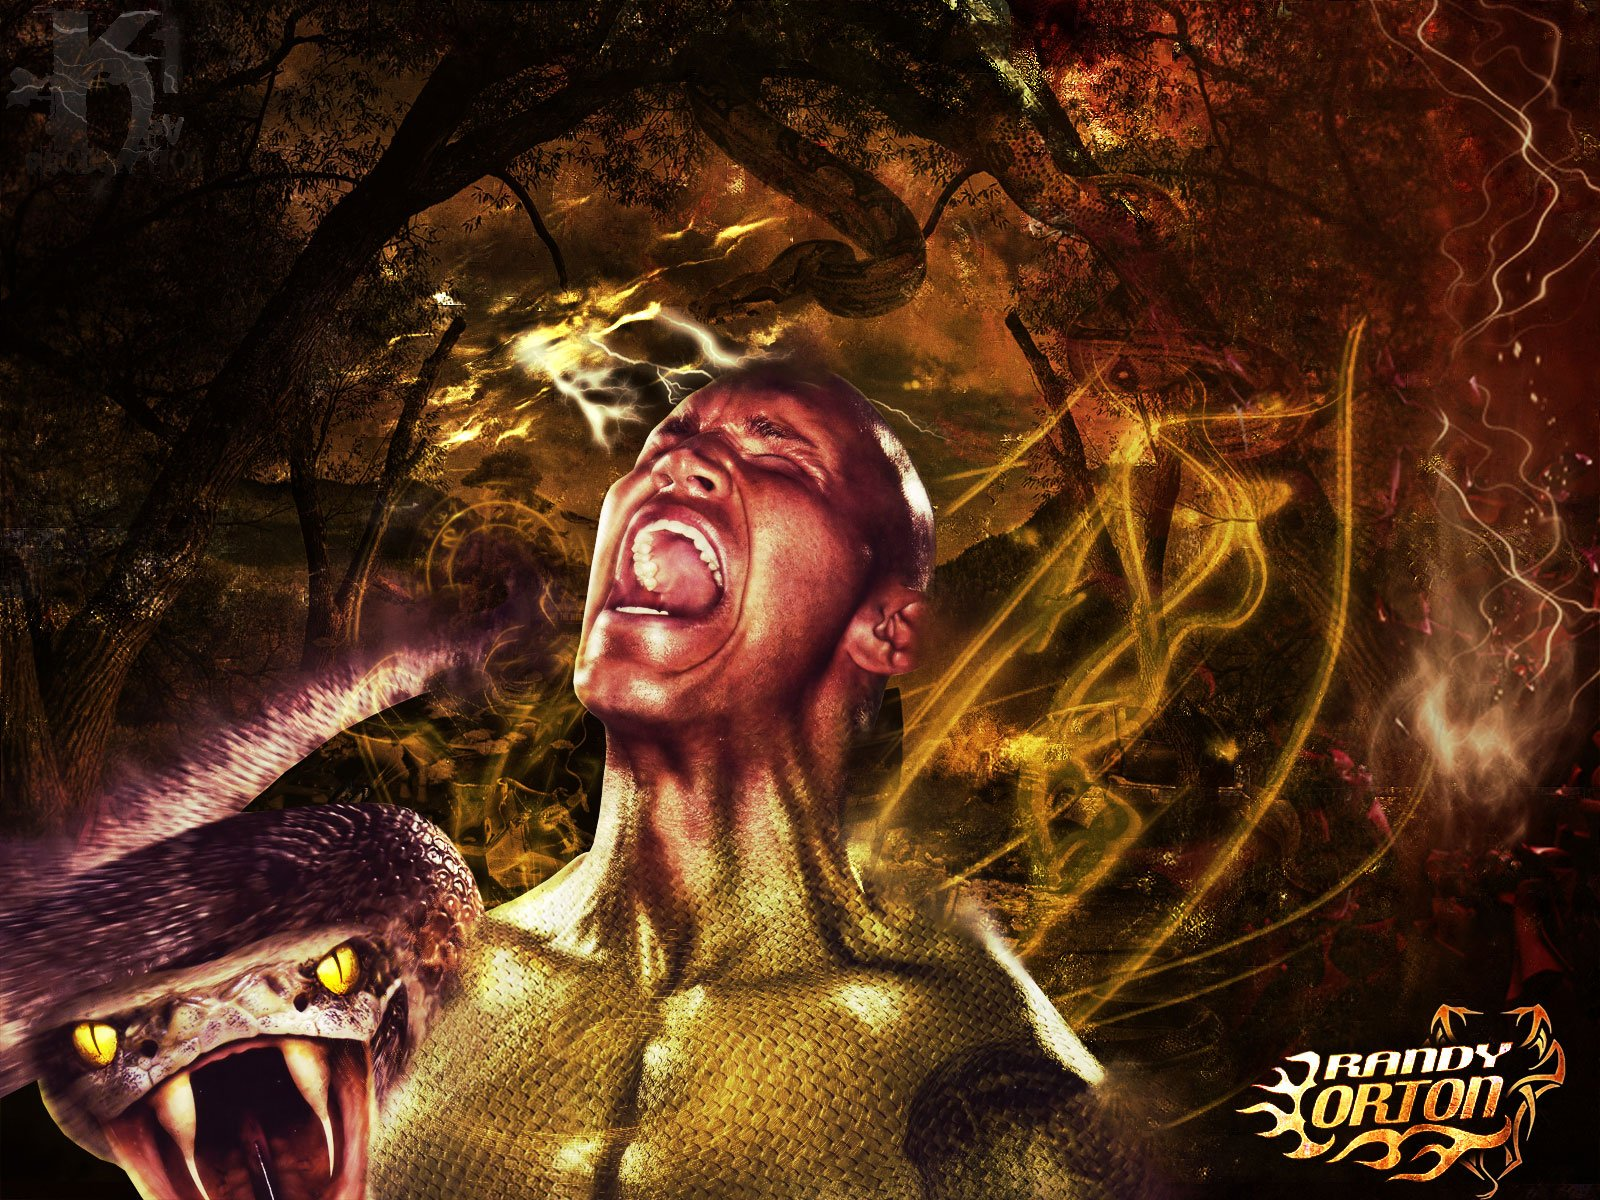 Randy Orton Logo Wallpaper Randy orton wallpaper 1600x1200